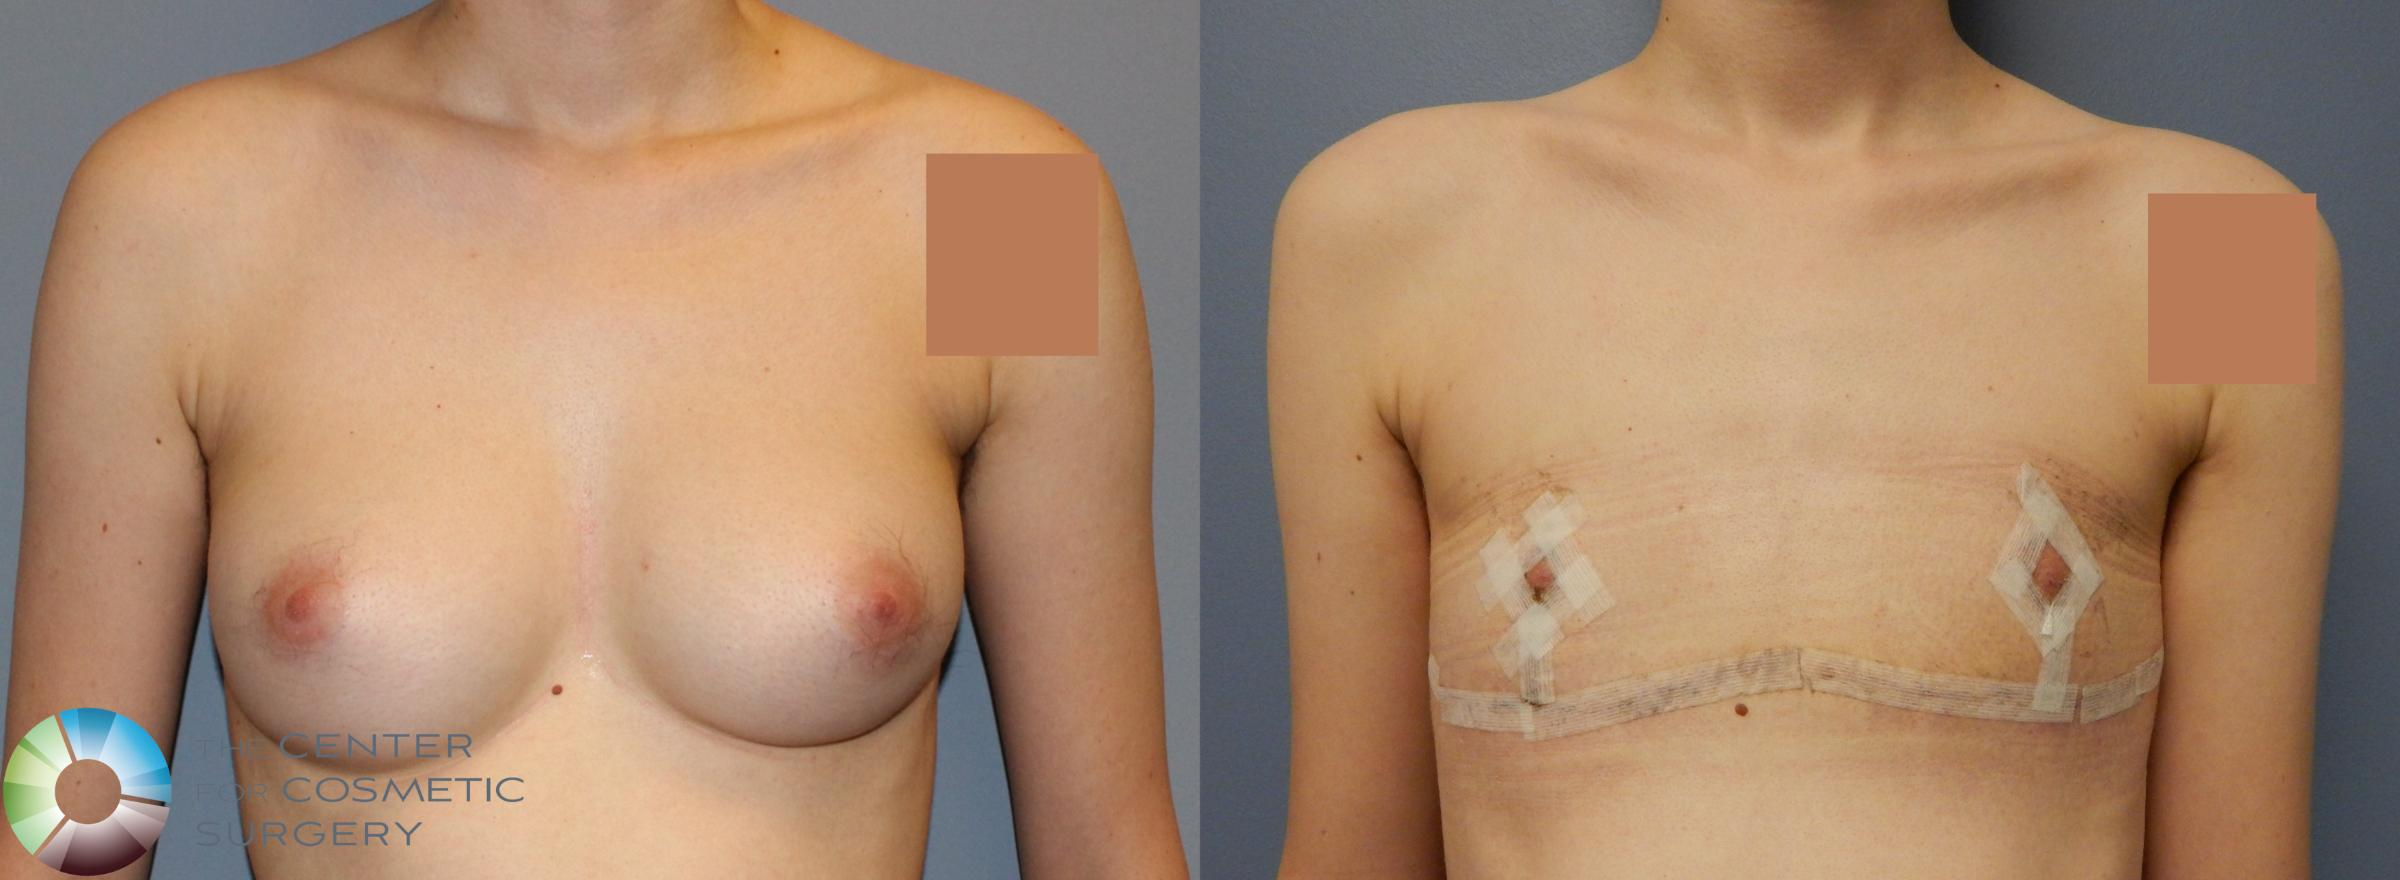 FTM Top Surgery/Chest Masculinization Case 857 Before & After View #1 | Golden, CO | The Center for Cosmetic Surgery